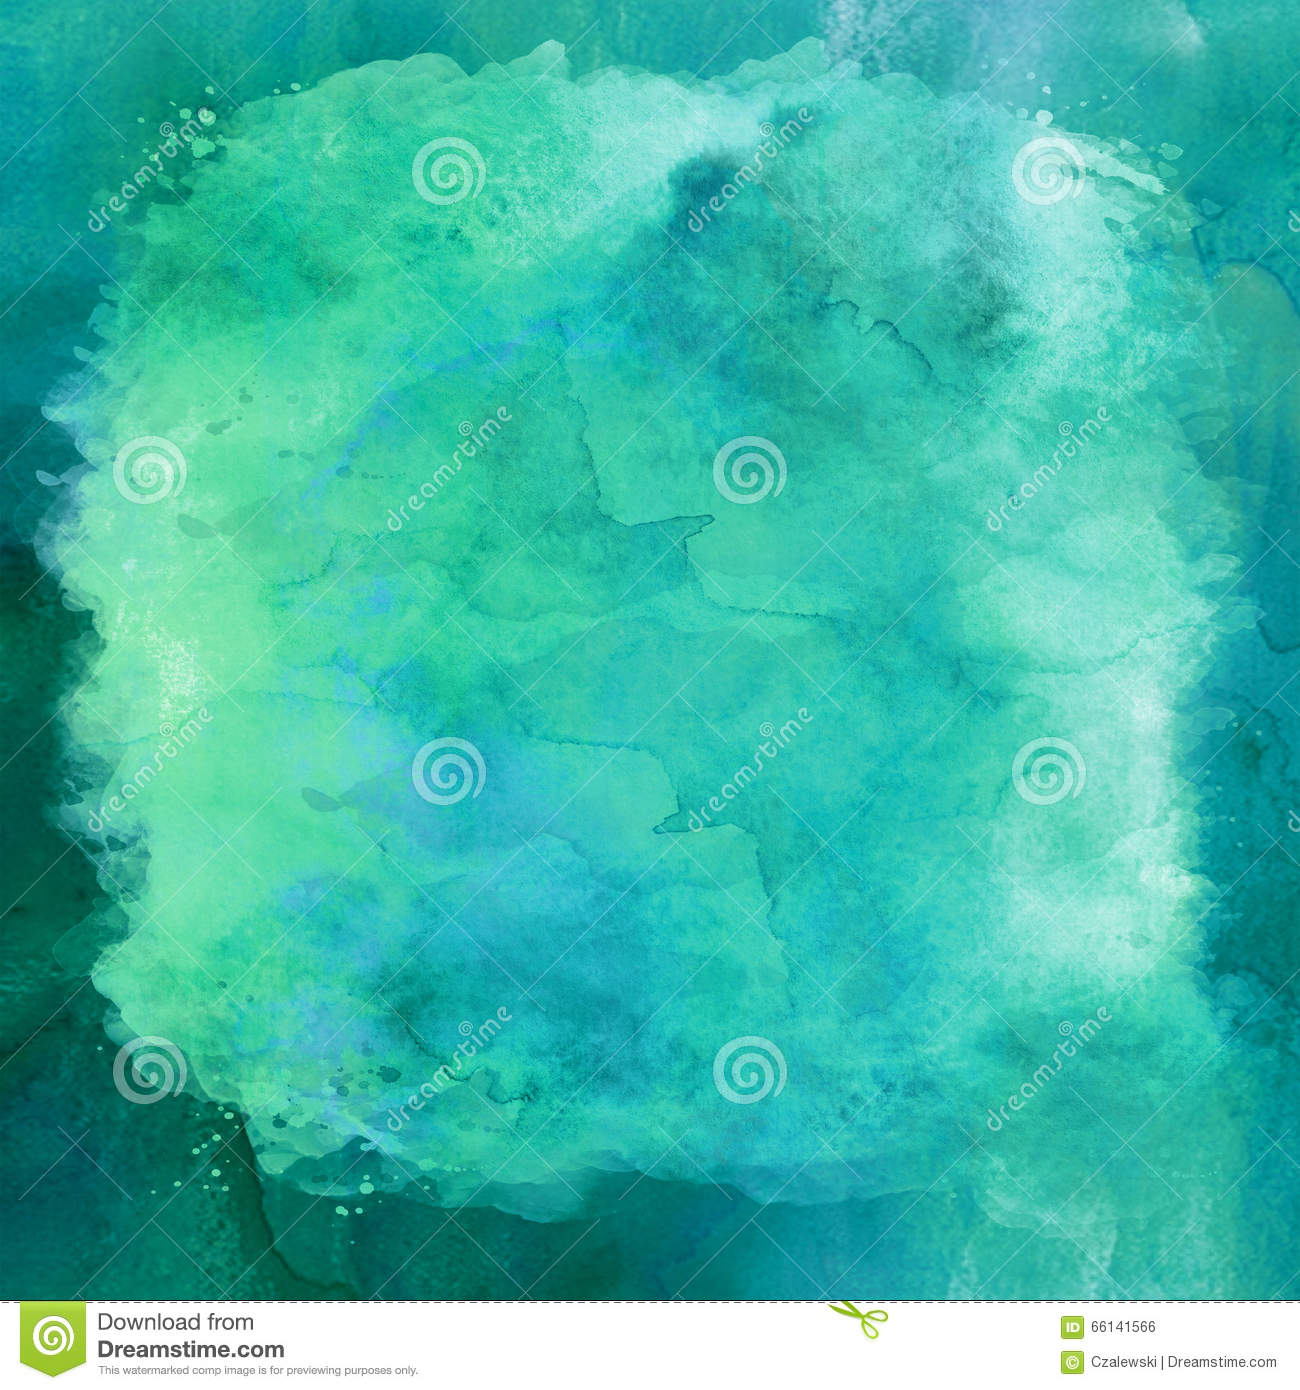 The Texture Of Teal And Turquoise: Blue Green Aqua Teal Turquoise Watercolor Paper Background